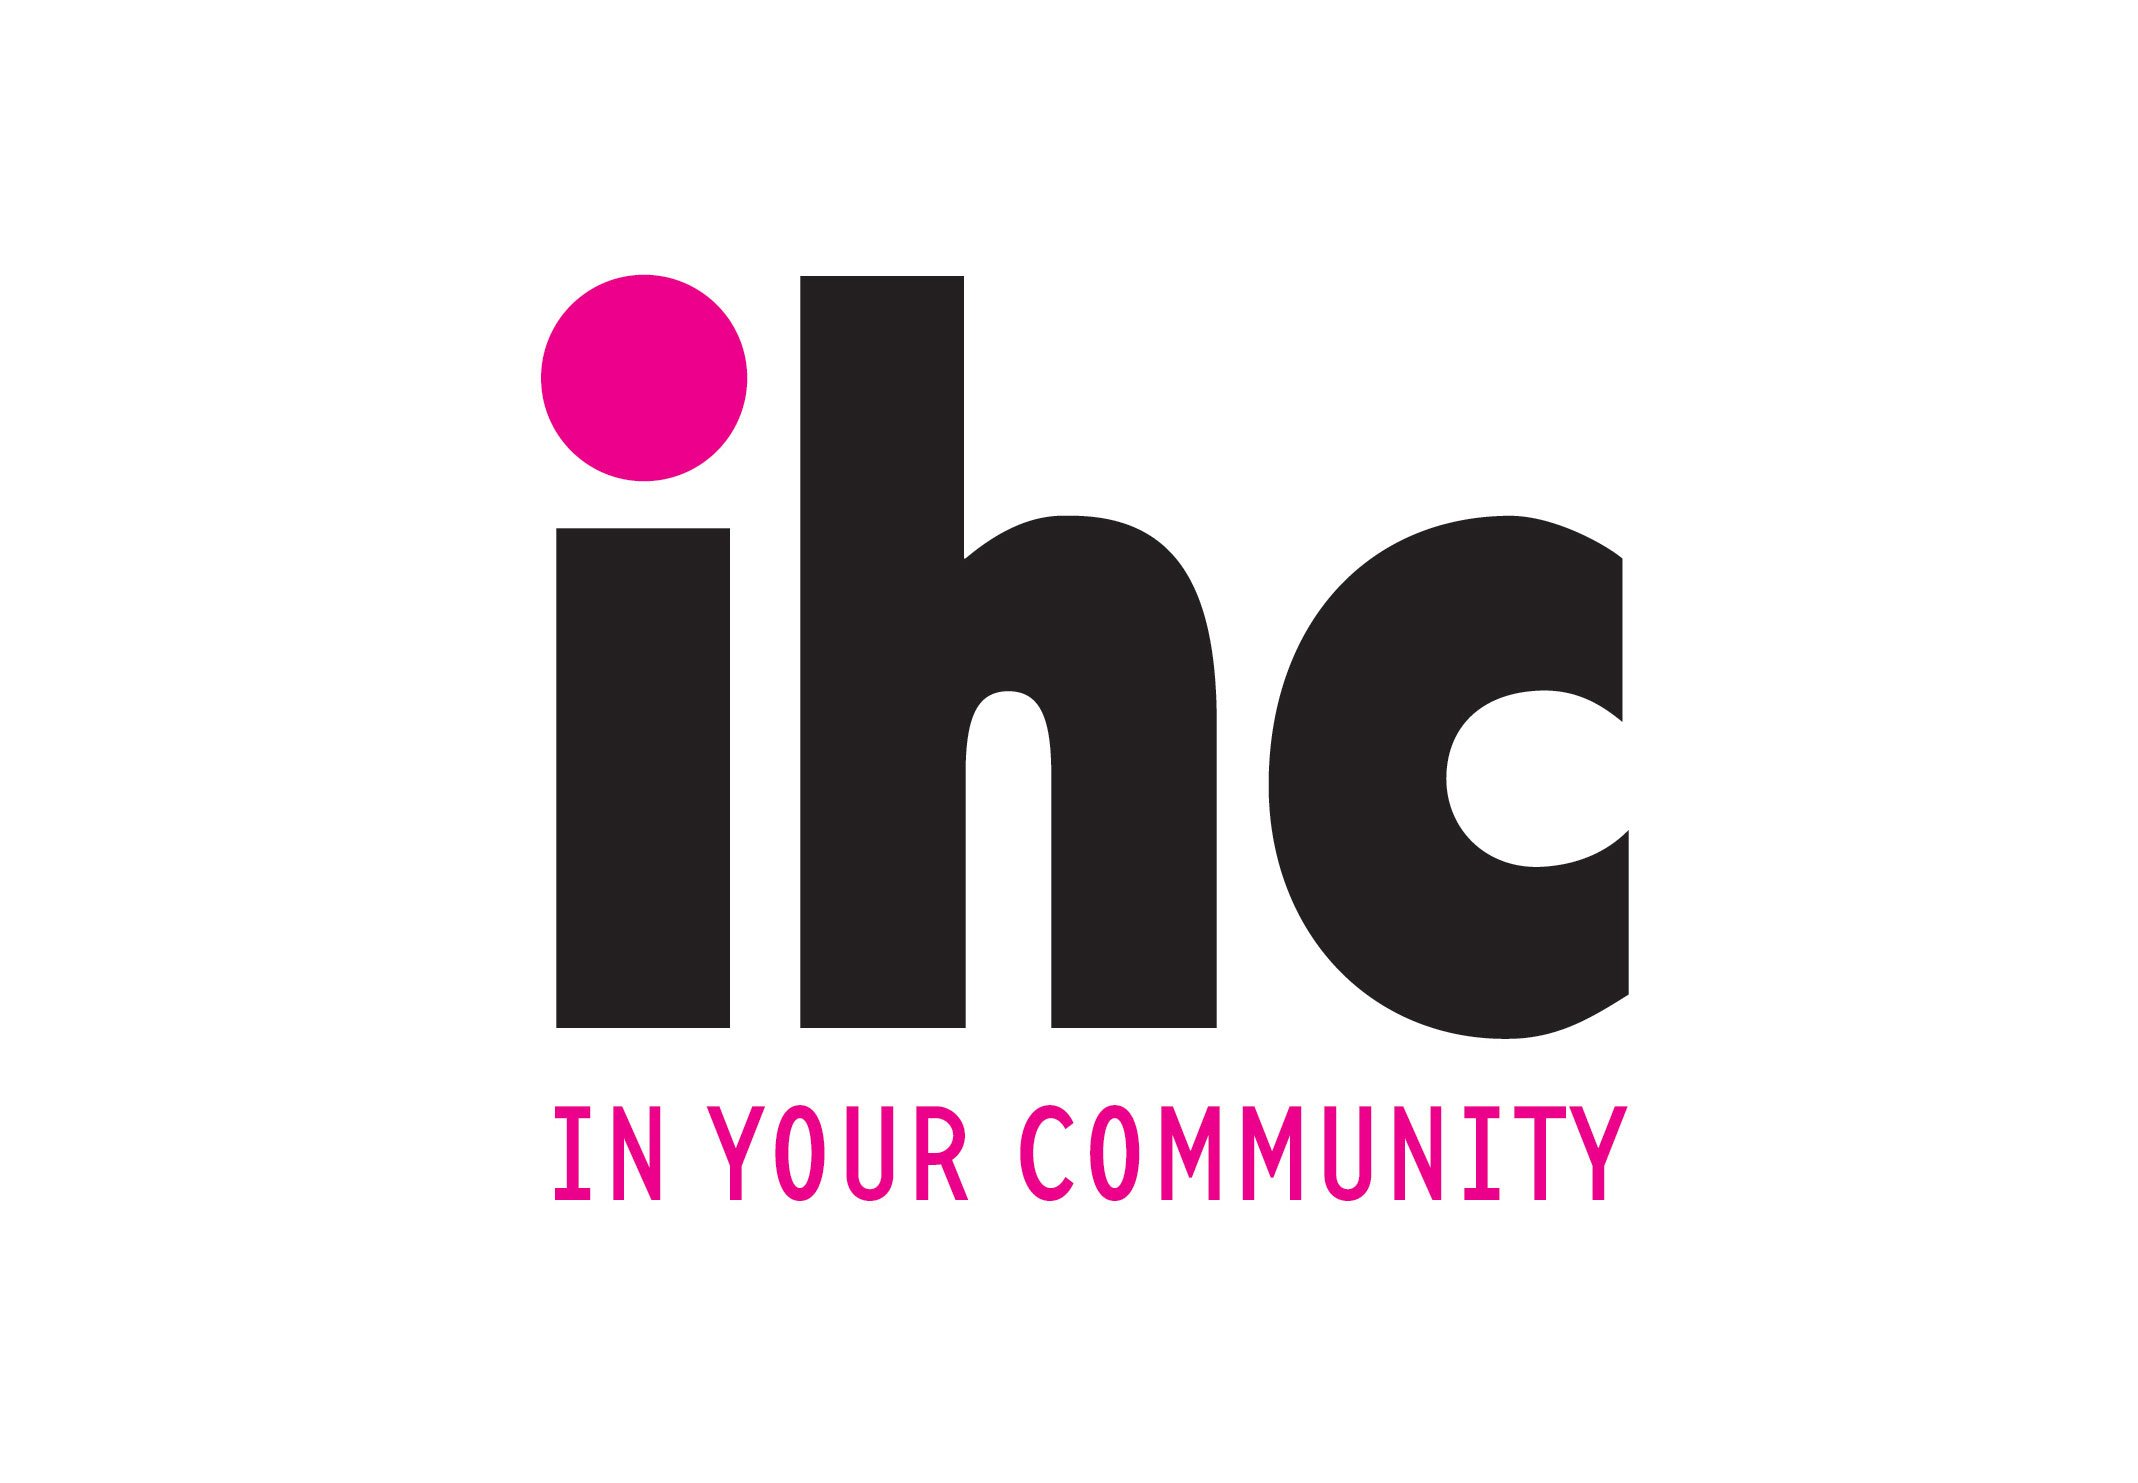 IHC, In your community